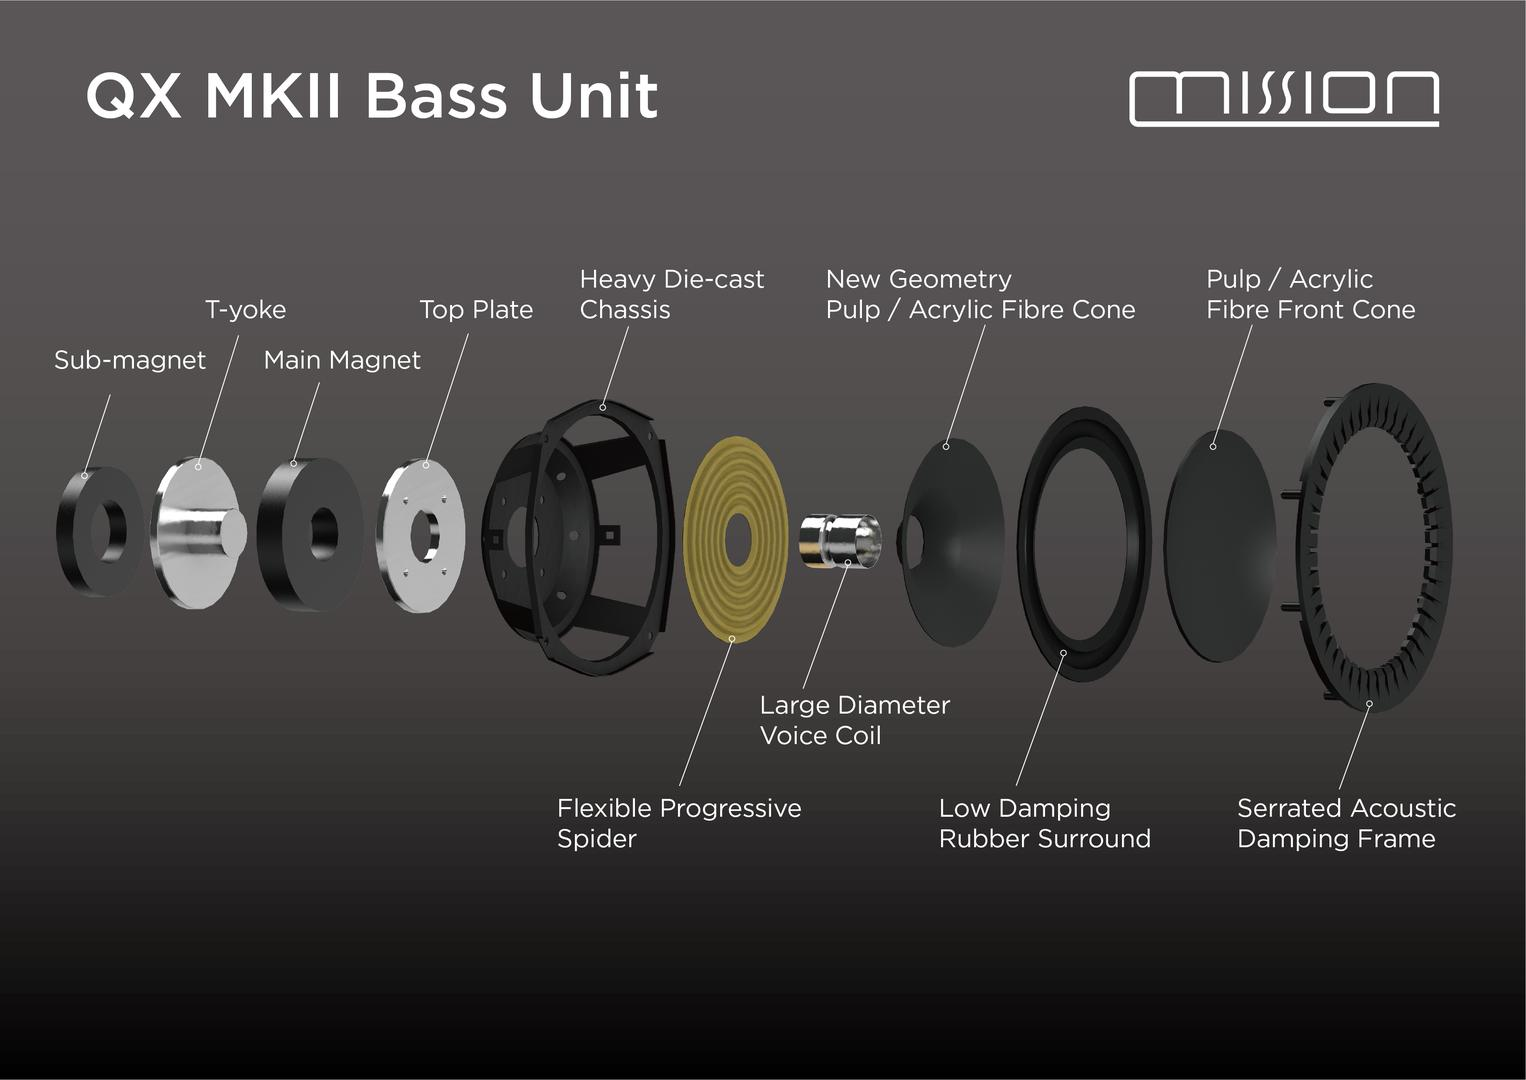 Mission QX MkII DiaDrive bass/mid driver construction